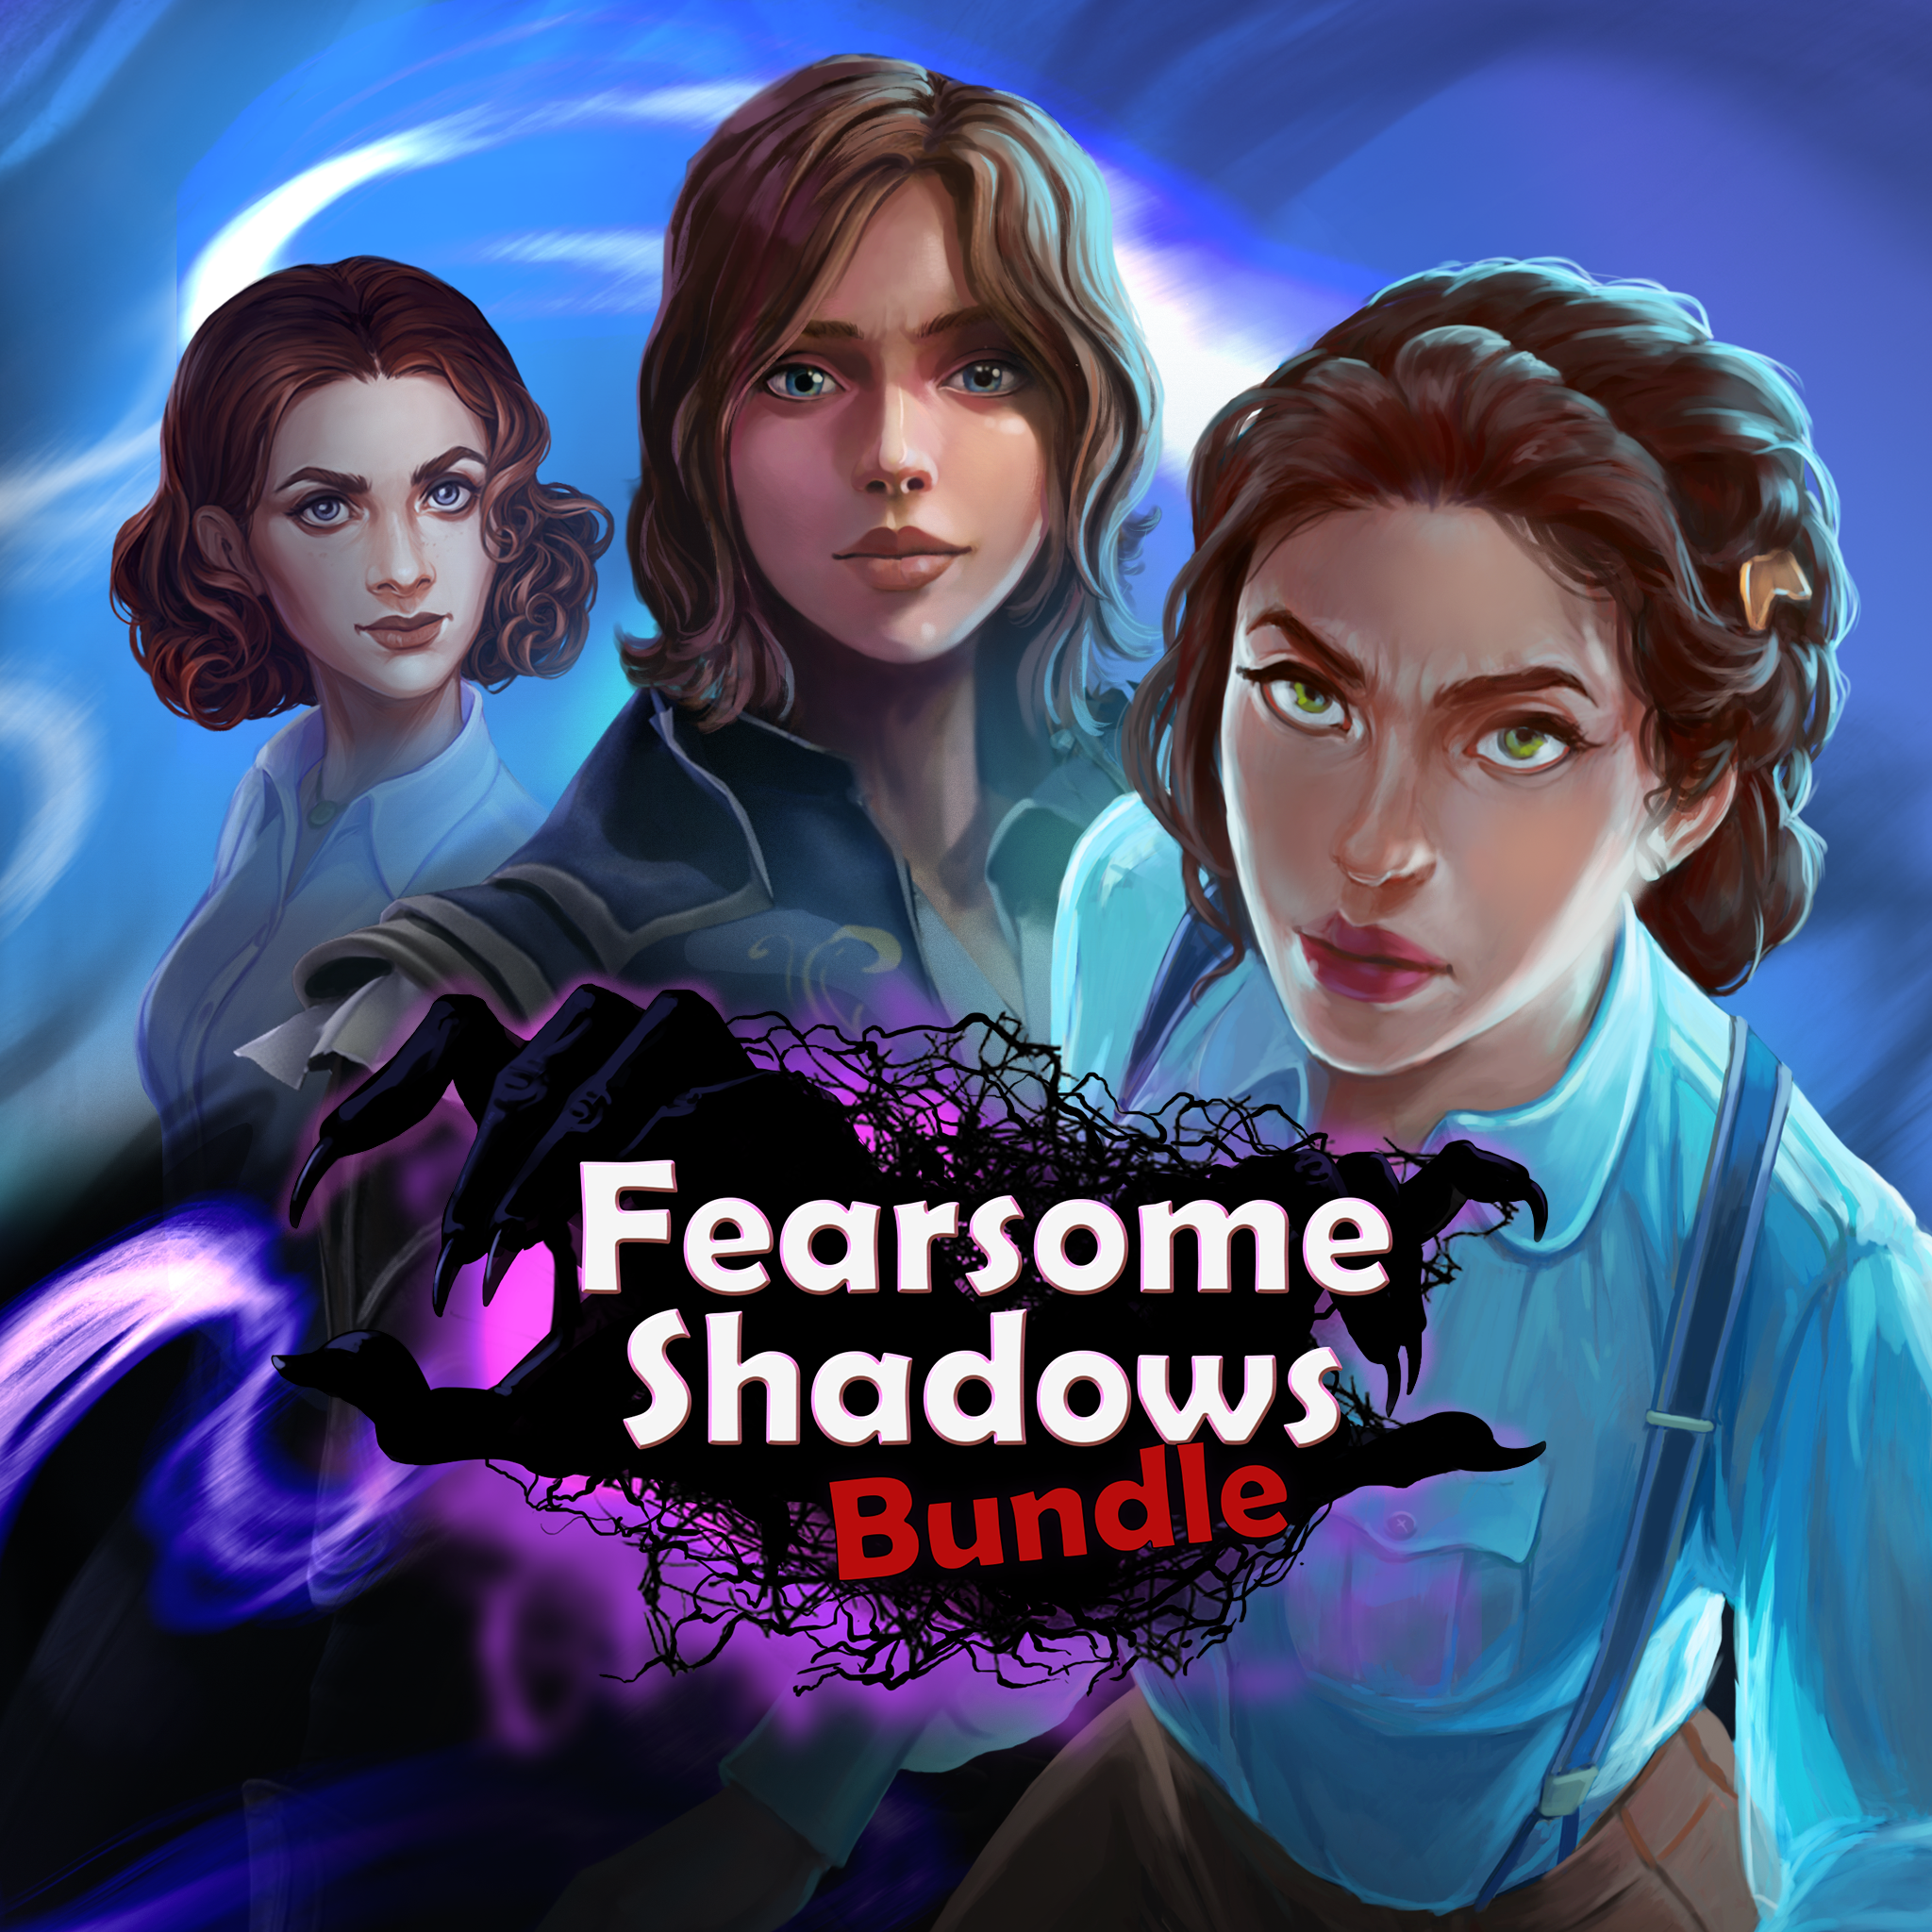 Thumbnail of Fearsome Shadows Bundle on PS4